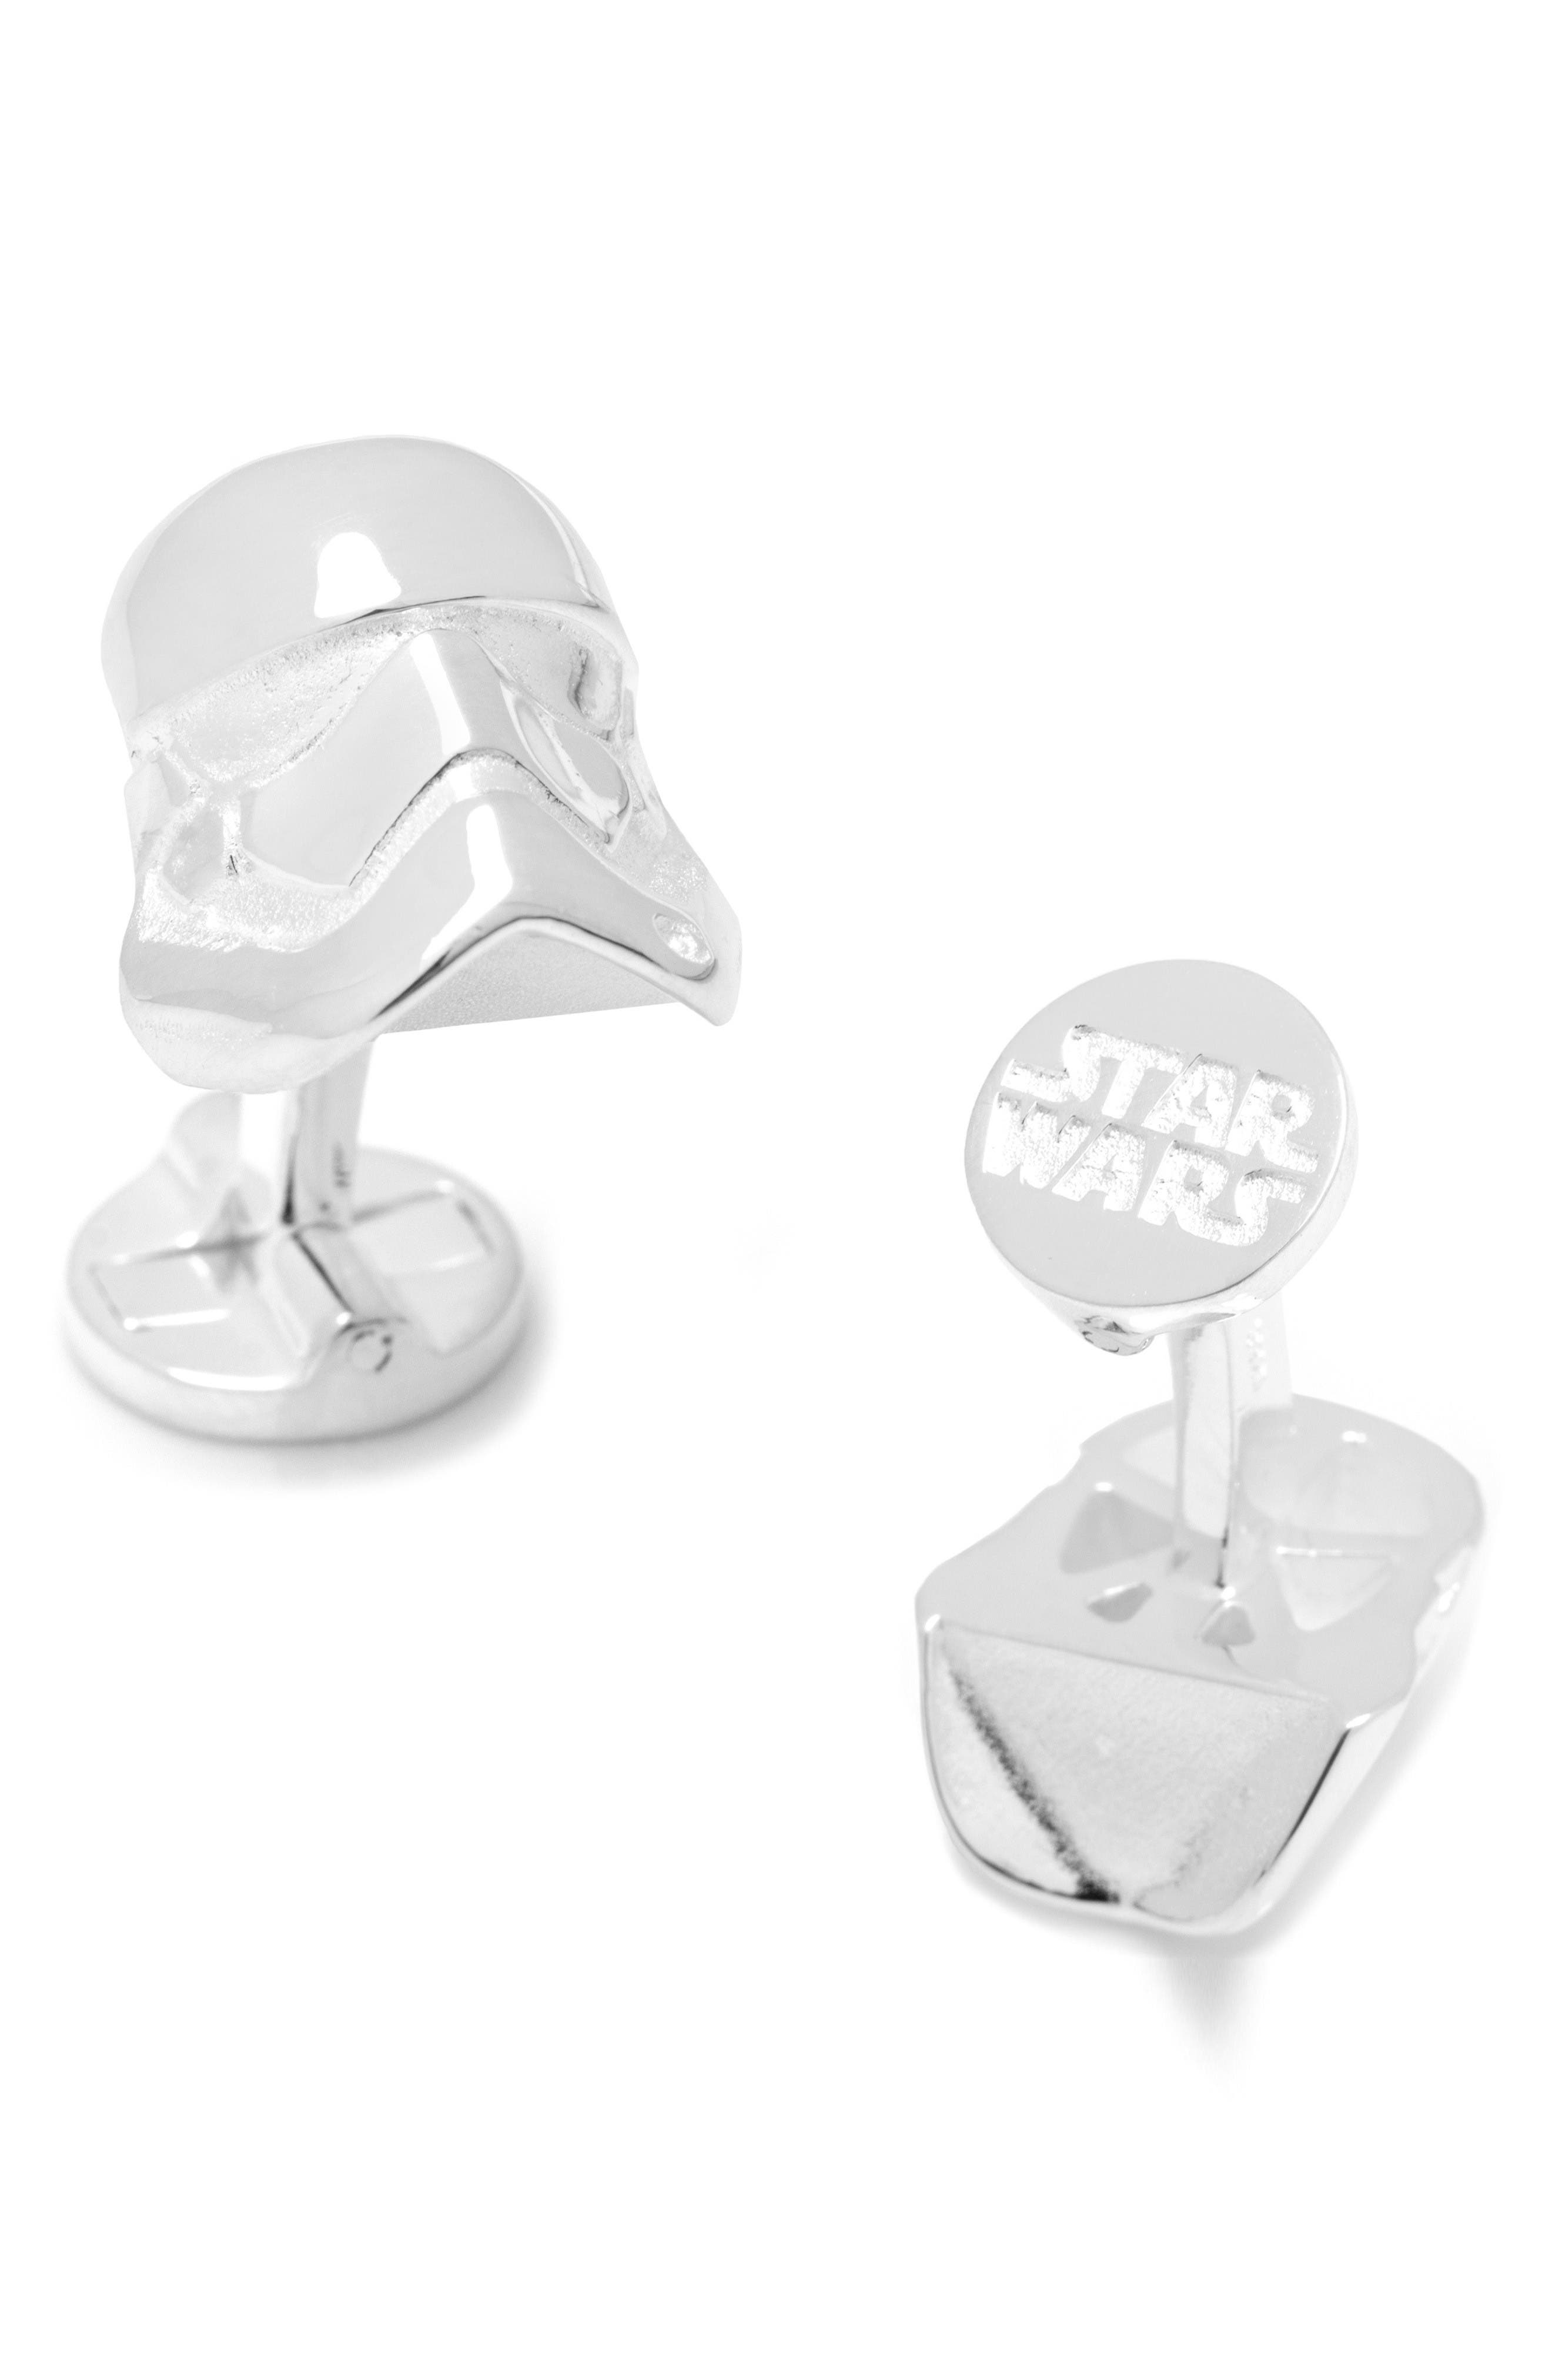 Star Wars<sup>™</sup> Stormtrooper Cuff Links,                             Main thumbnail 1, color,                             Silver